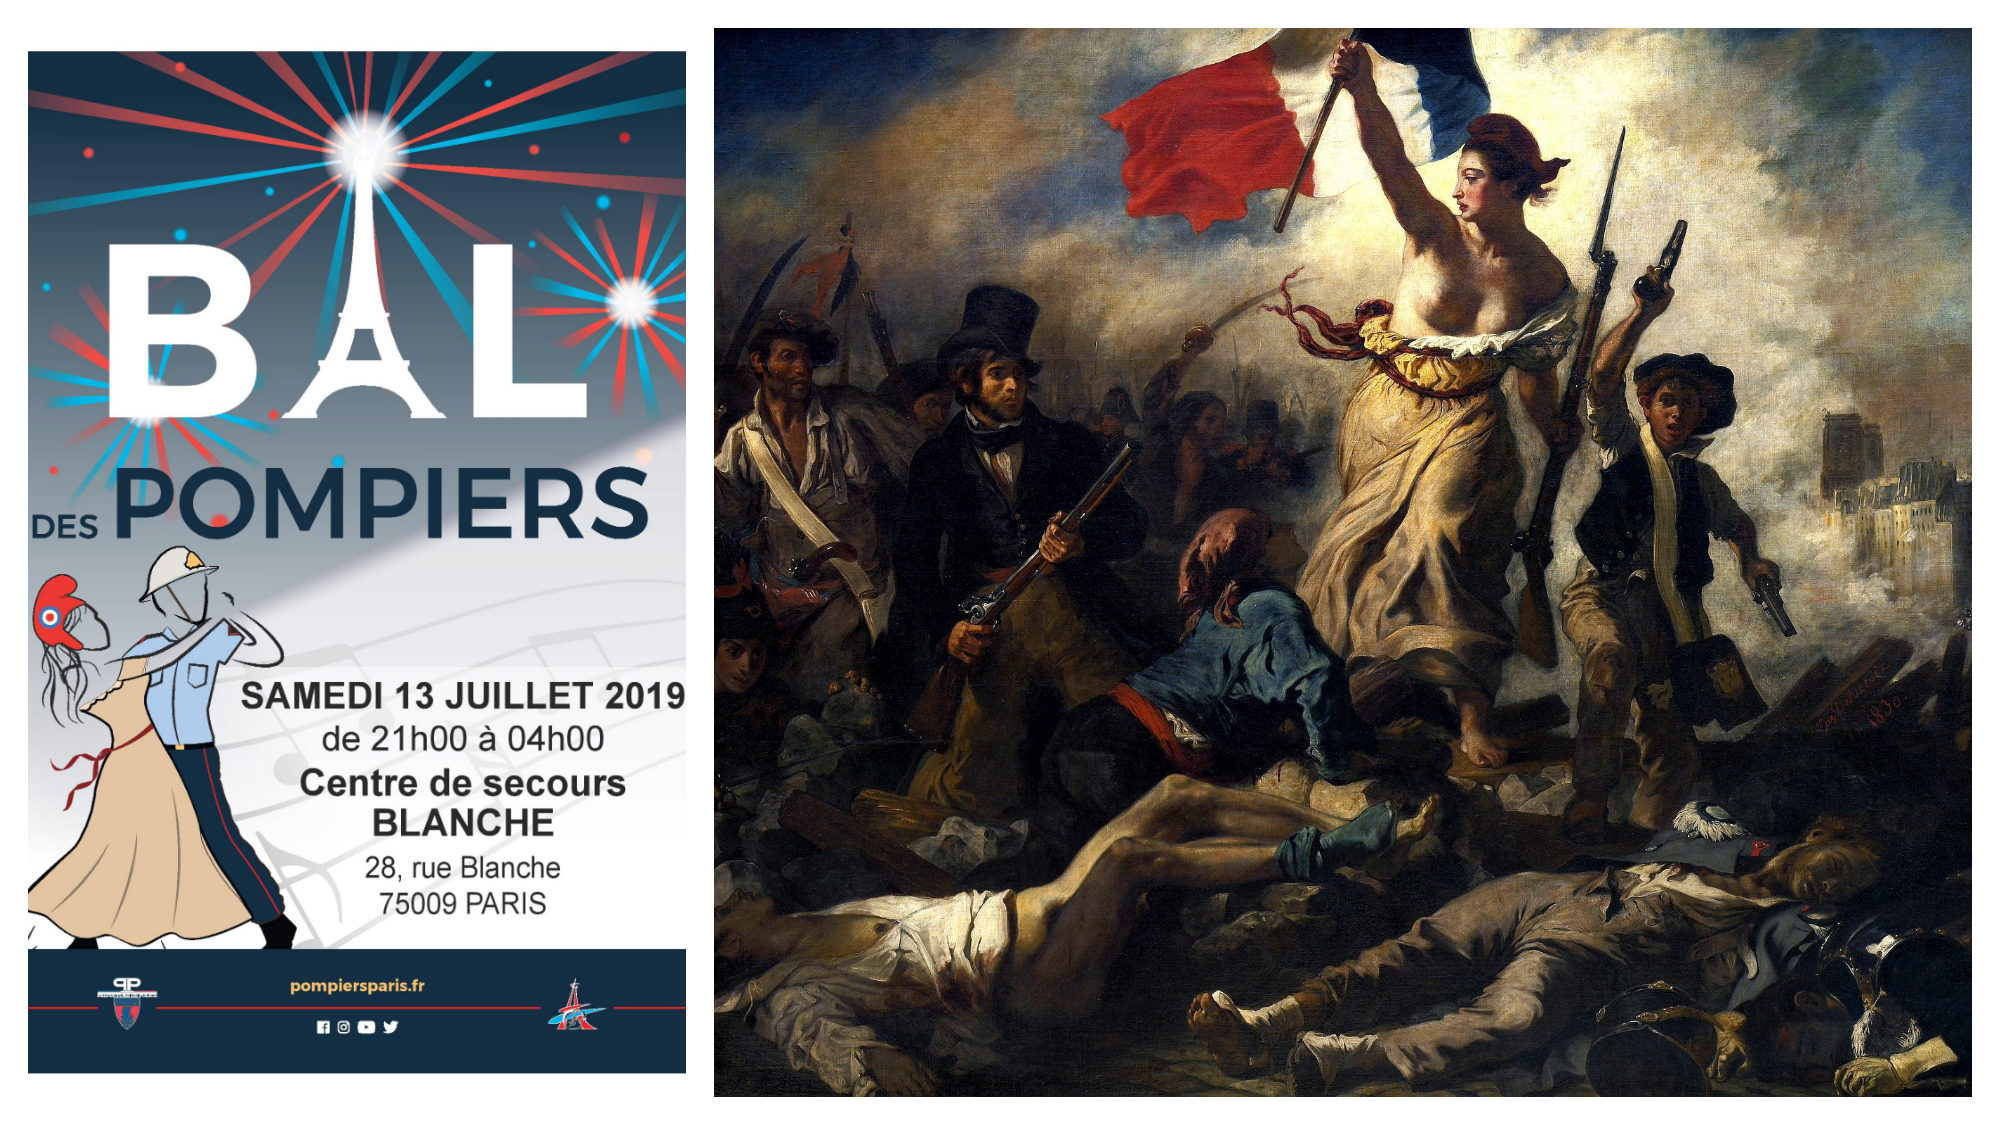 A poster for a Bal des Pompiers on Bastille Day (left). A painting depicting a scene of the French Revolution (right).